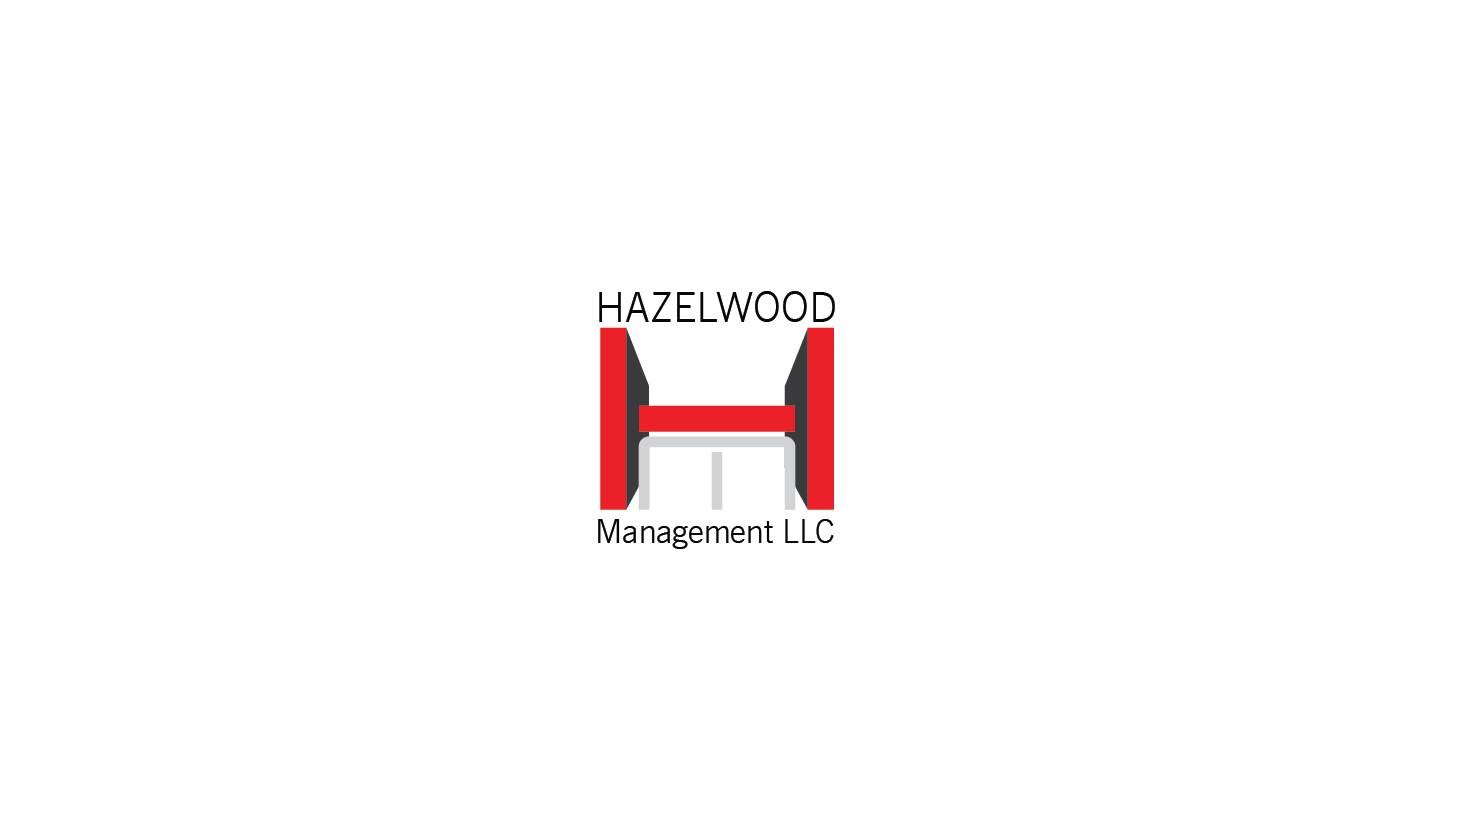 Logo Design by Private User - Entry No. 132 in the Logo Design Contest Hazelwood Management LLC Logo Design.